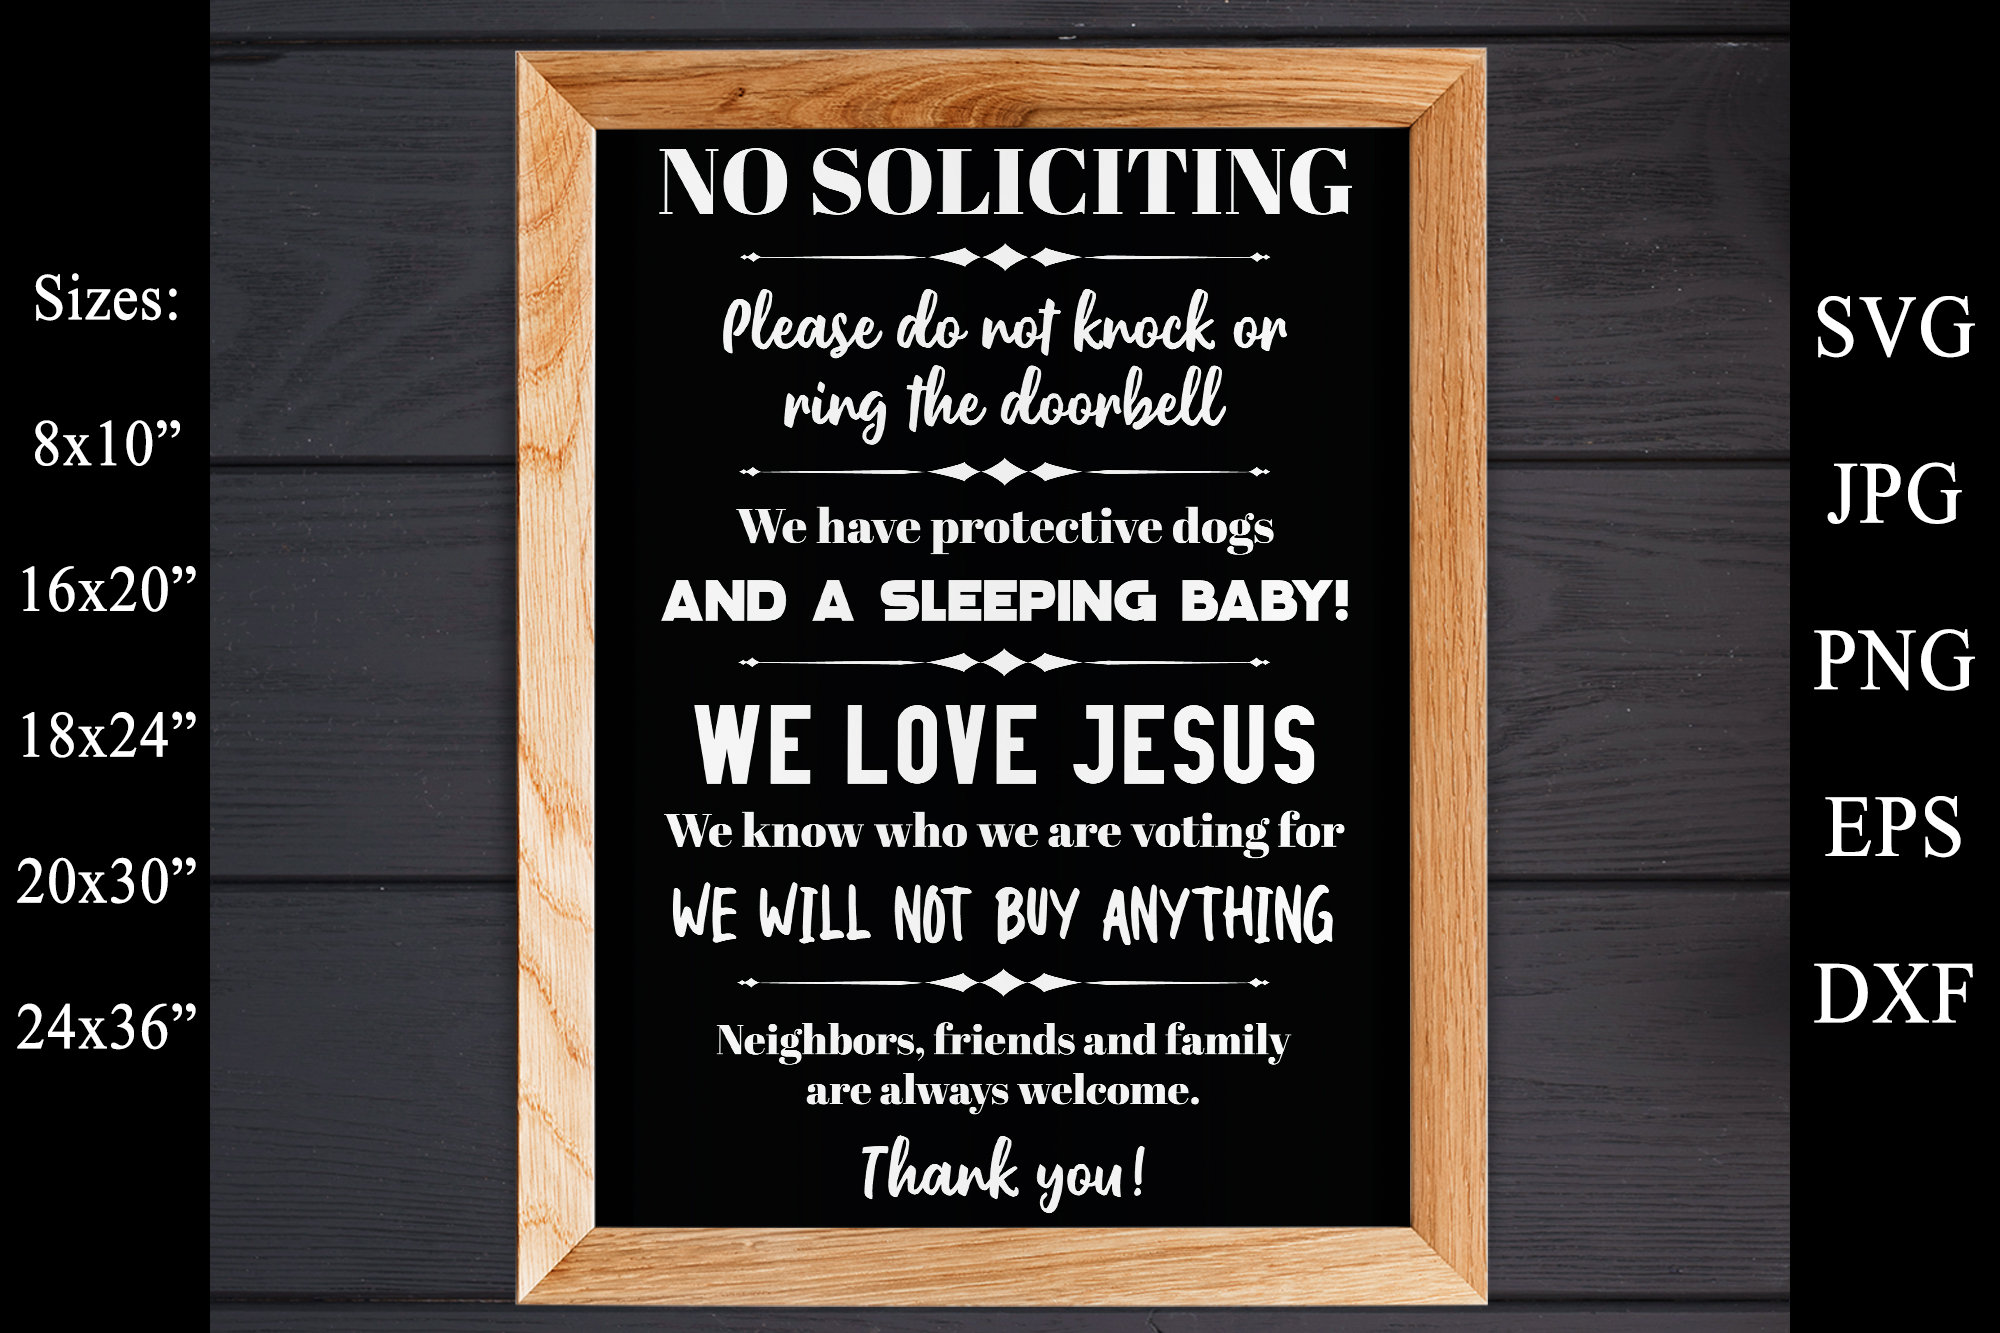 No Soliciting - Do Not Ring The Doorbell SVG EPS Solicitors example image 3